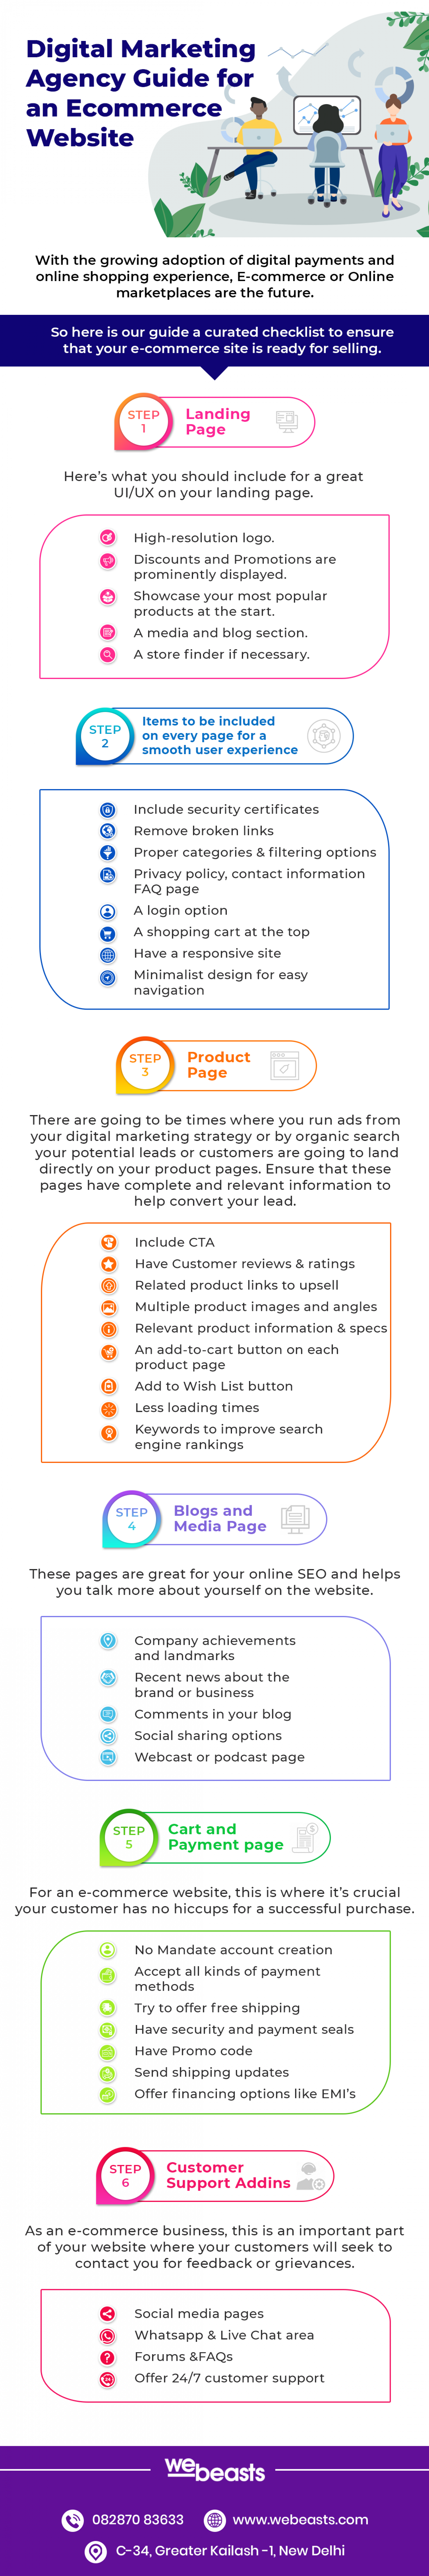 Digital Marketing Agency Guide for an Ecommerce Website Infographic